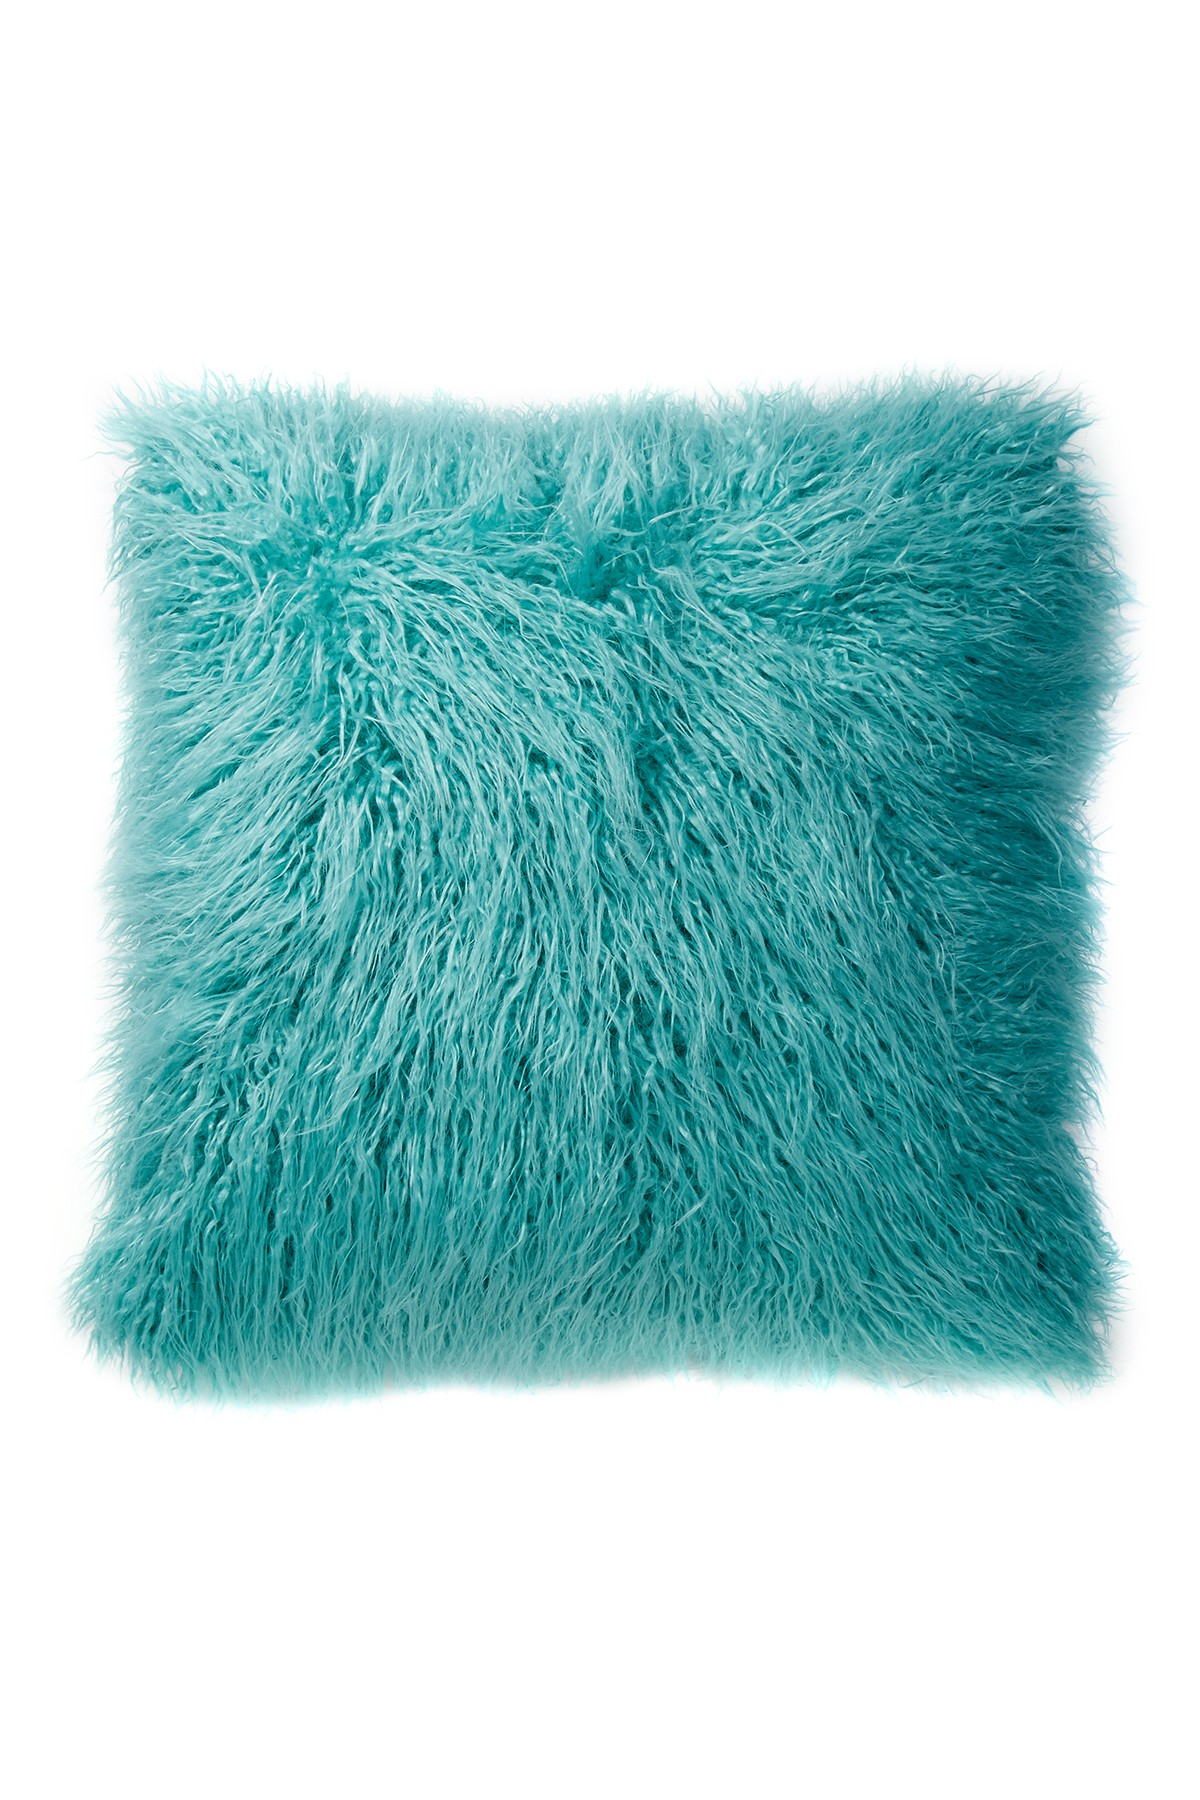 Turquoise Furniture Covers